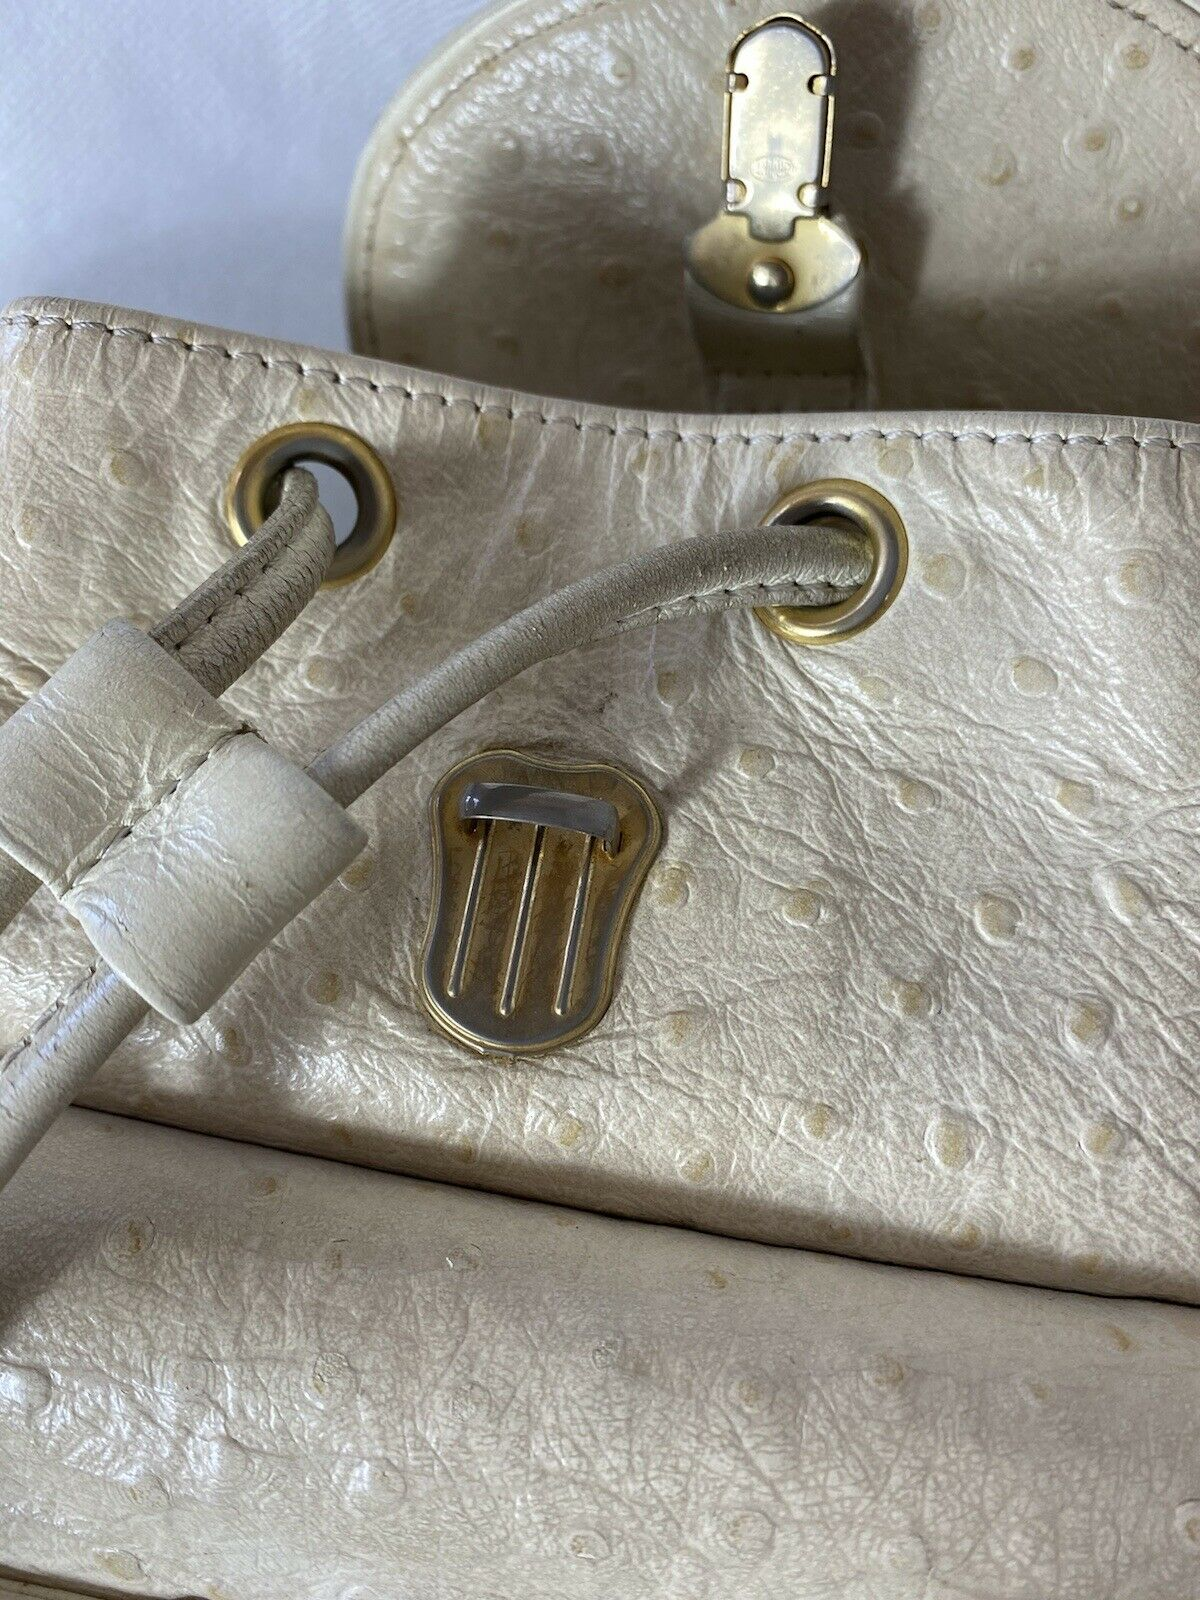 RARE VTG GIANNI VERSACE 90S WHITE OSTRICH BACKPACK - image 6